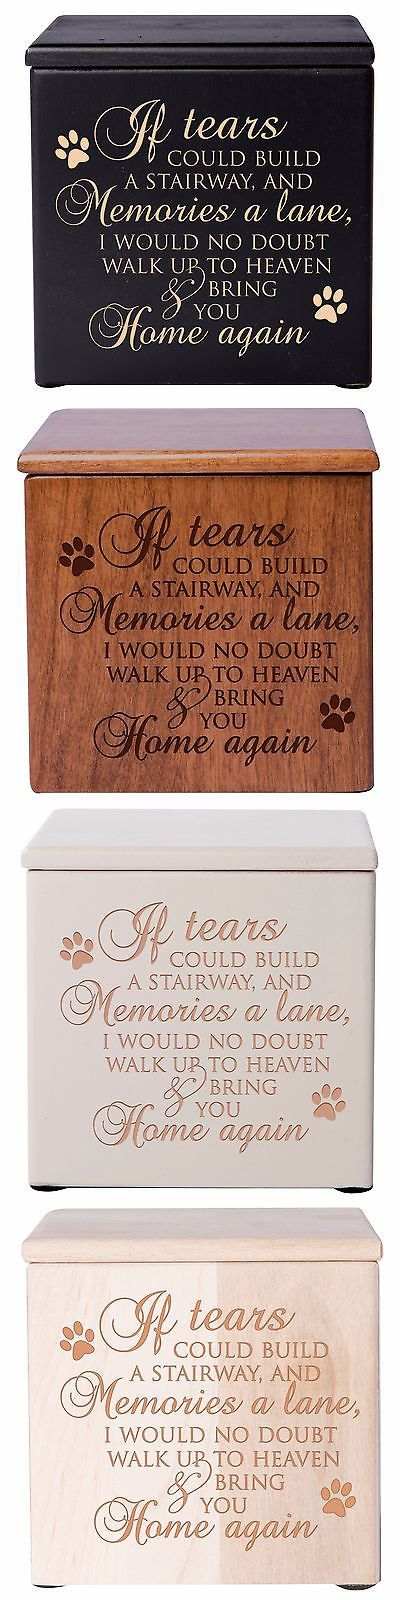 Pet Memorials and Urns 116391: Cremation Urn For Pet Ashes Small Memorial Keepsake Gift Box Free Shipping -> BUY IT NOW ONLY: $54.99 on eBay!